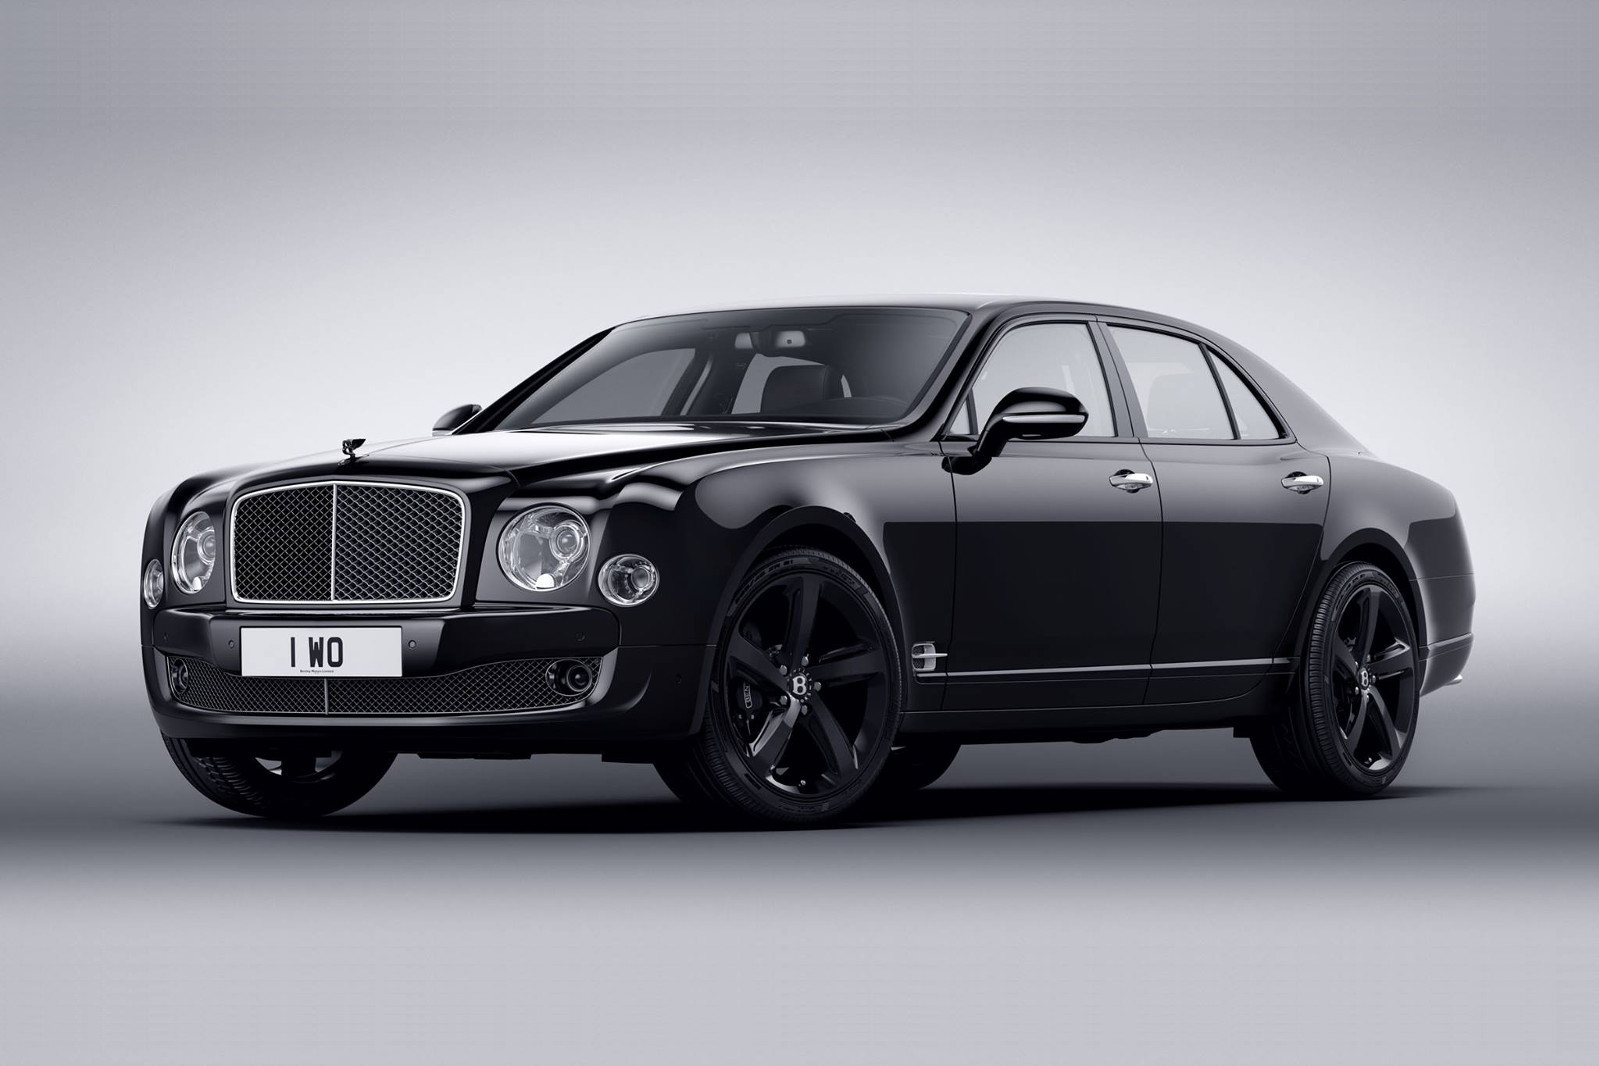 Bentley S Mulliner Division Introduces Mulsanne Speed